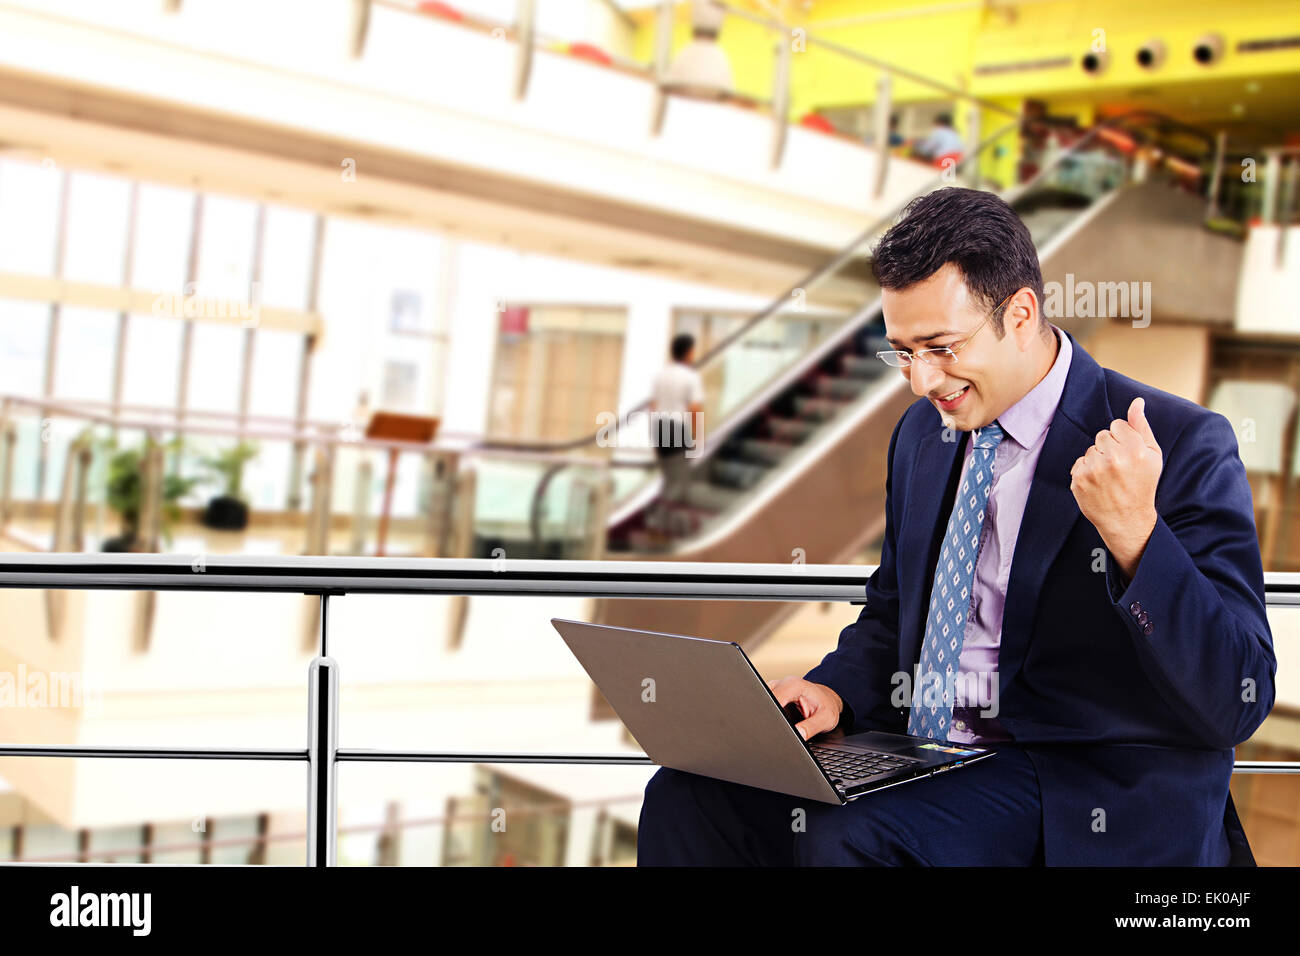 1 indian Businessman mall Laptop working - Stock Image